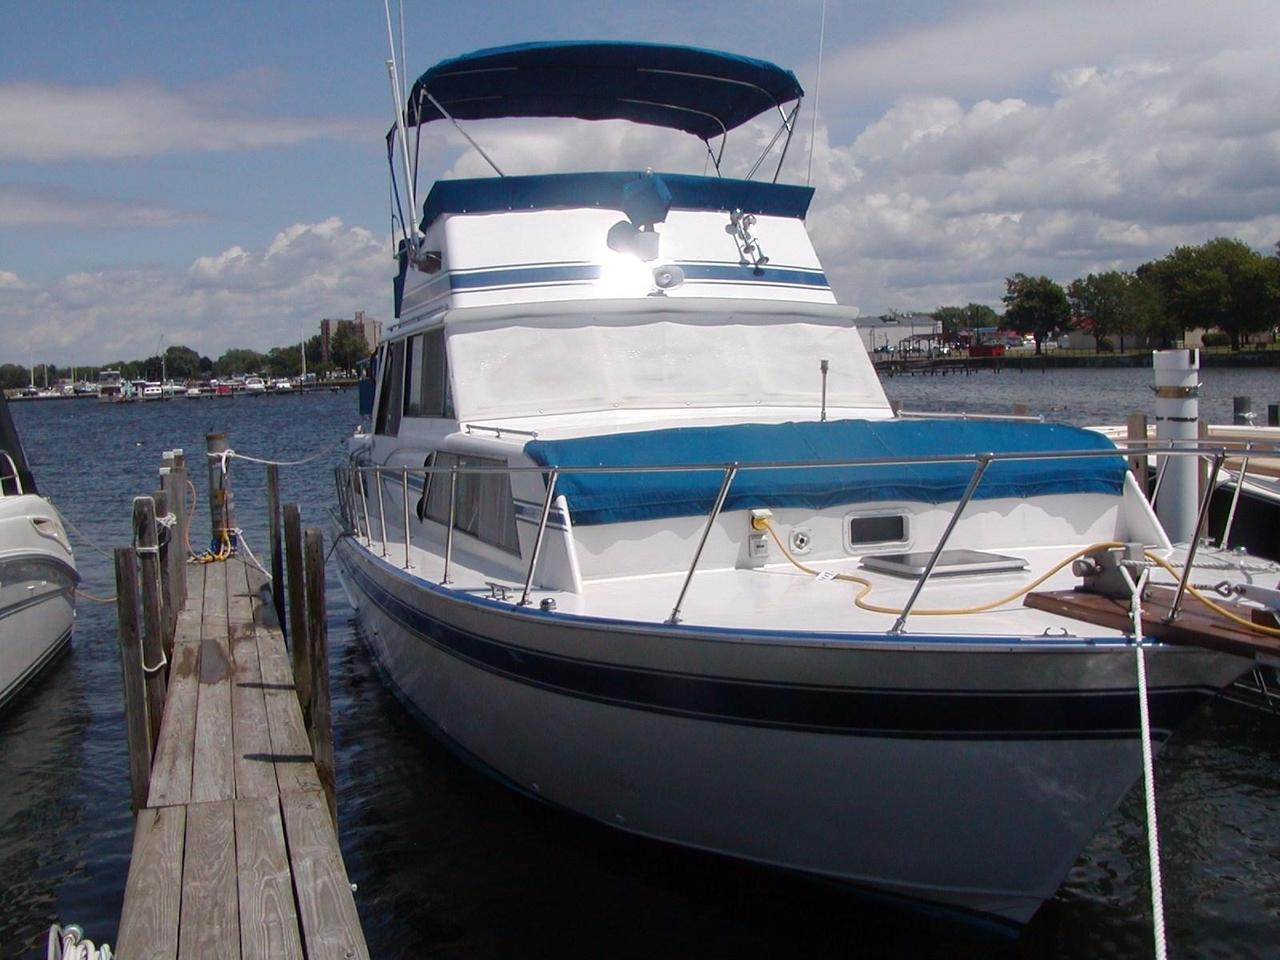 1979 Used Marinette 37' Double Cabin Cruiser Boat For Sale - $30,000